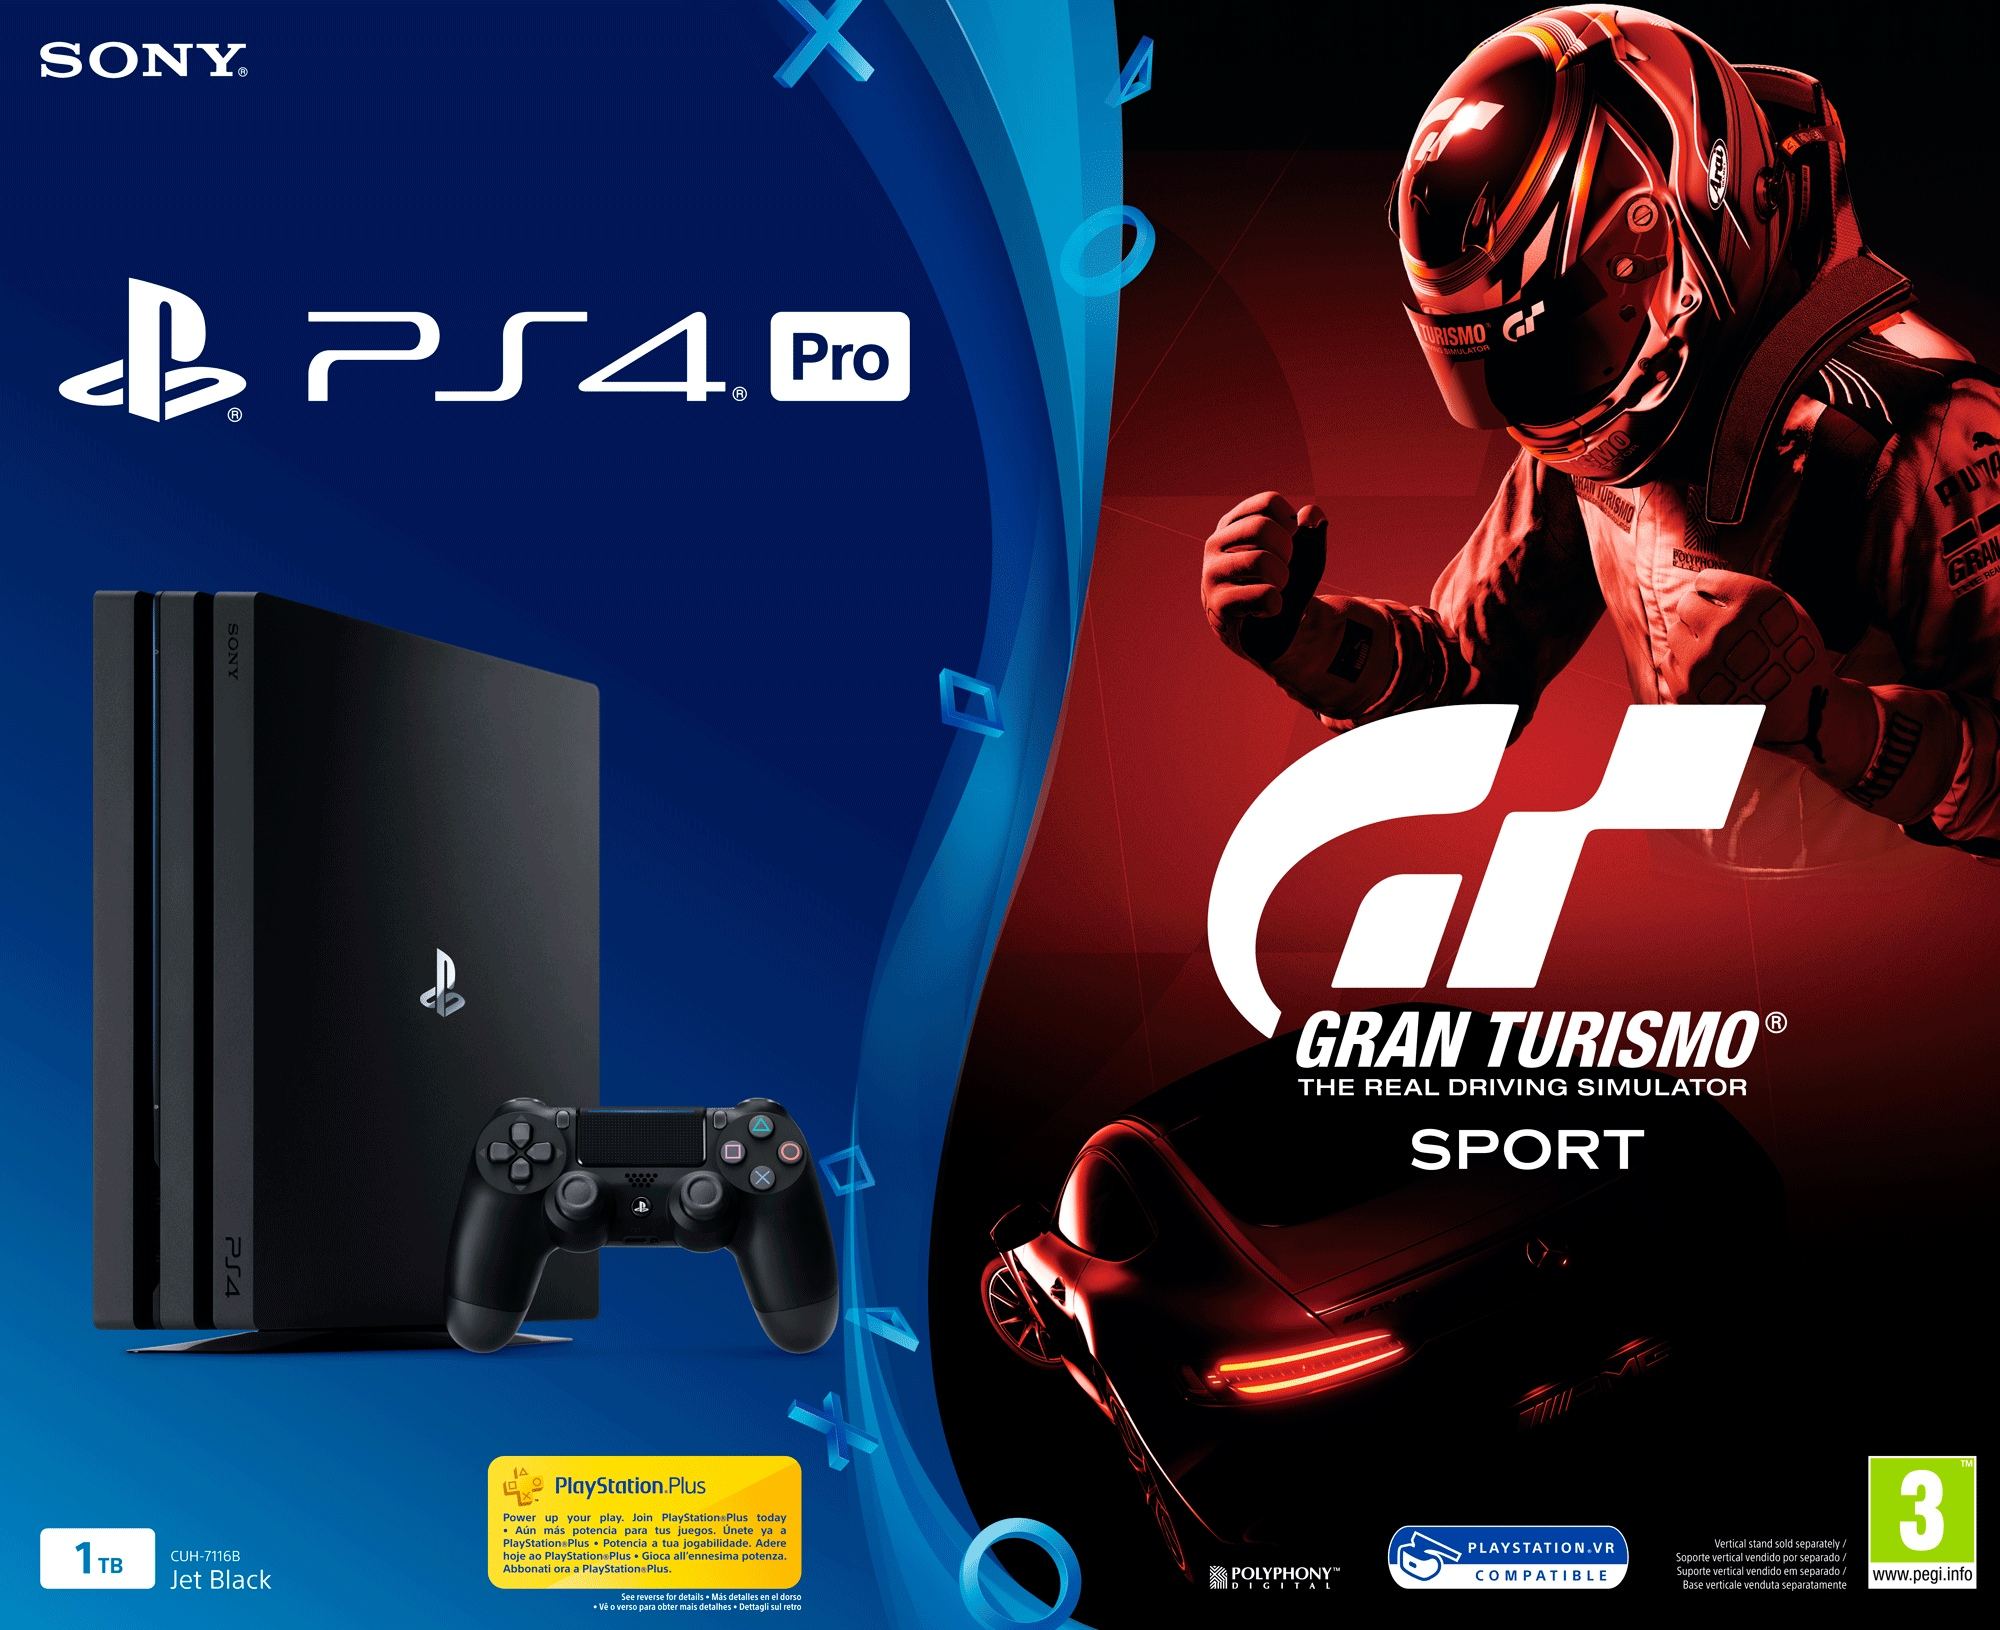 Ps4 Pro Gran Turismo Gaming Console Sony Playstation 4 Pro Gran